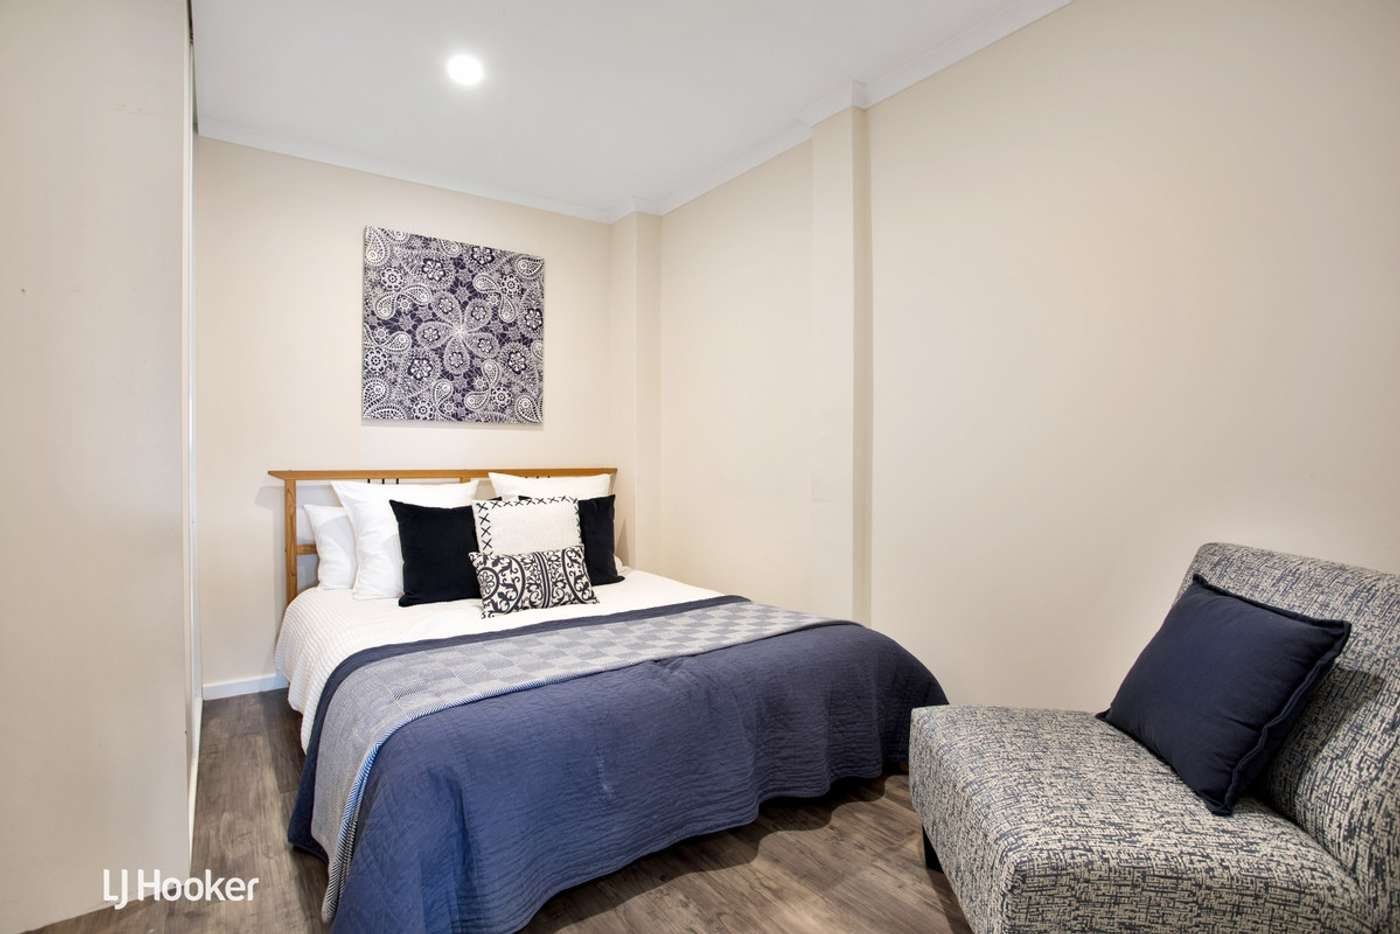 Fifth view of Homely apartment listing, 177/65 King William Street, Adelaide SA 5000